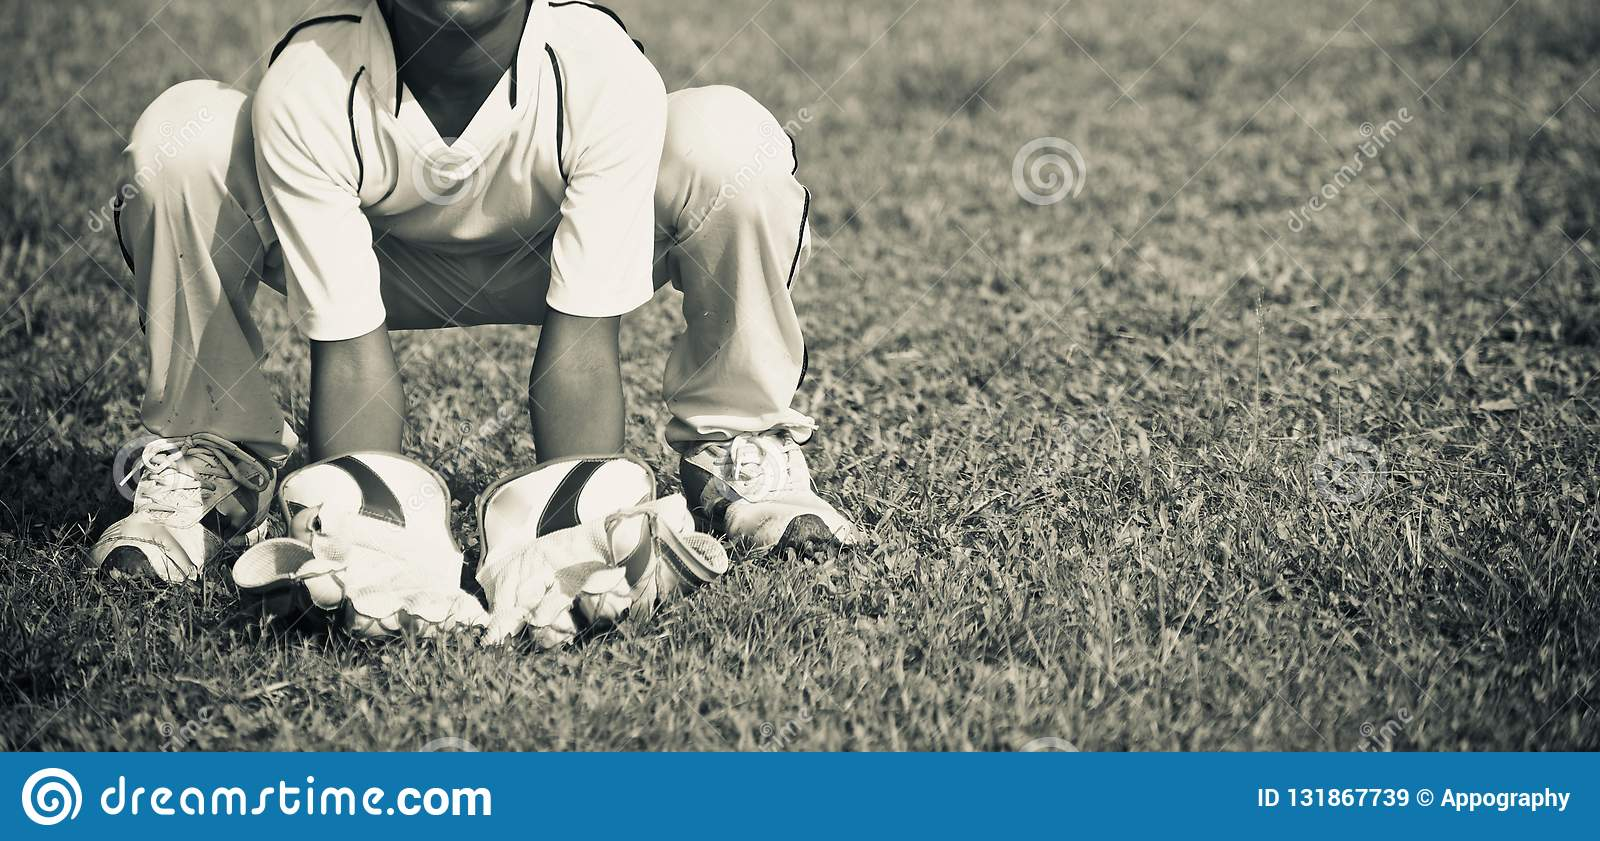 Young boy practicing wicket keeping around a field